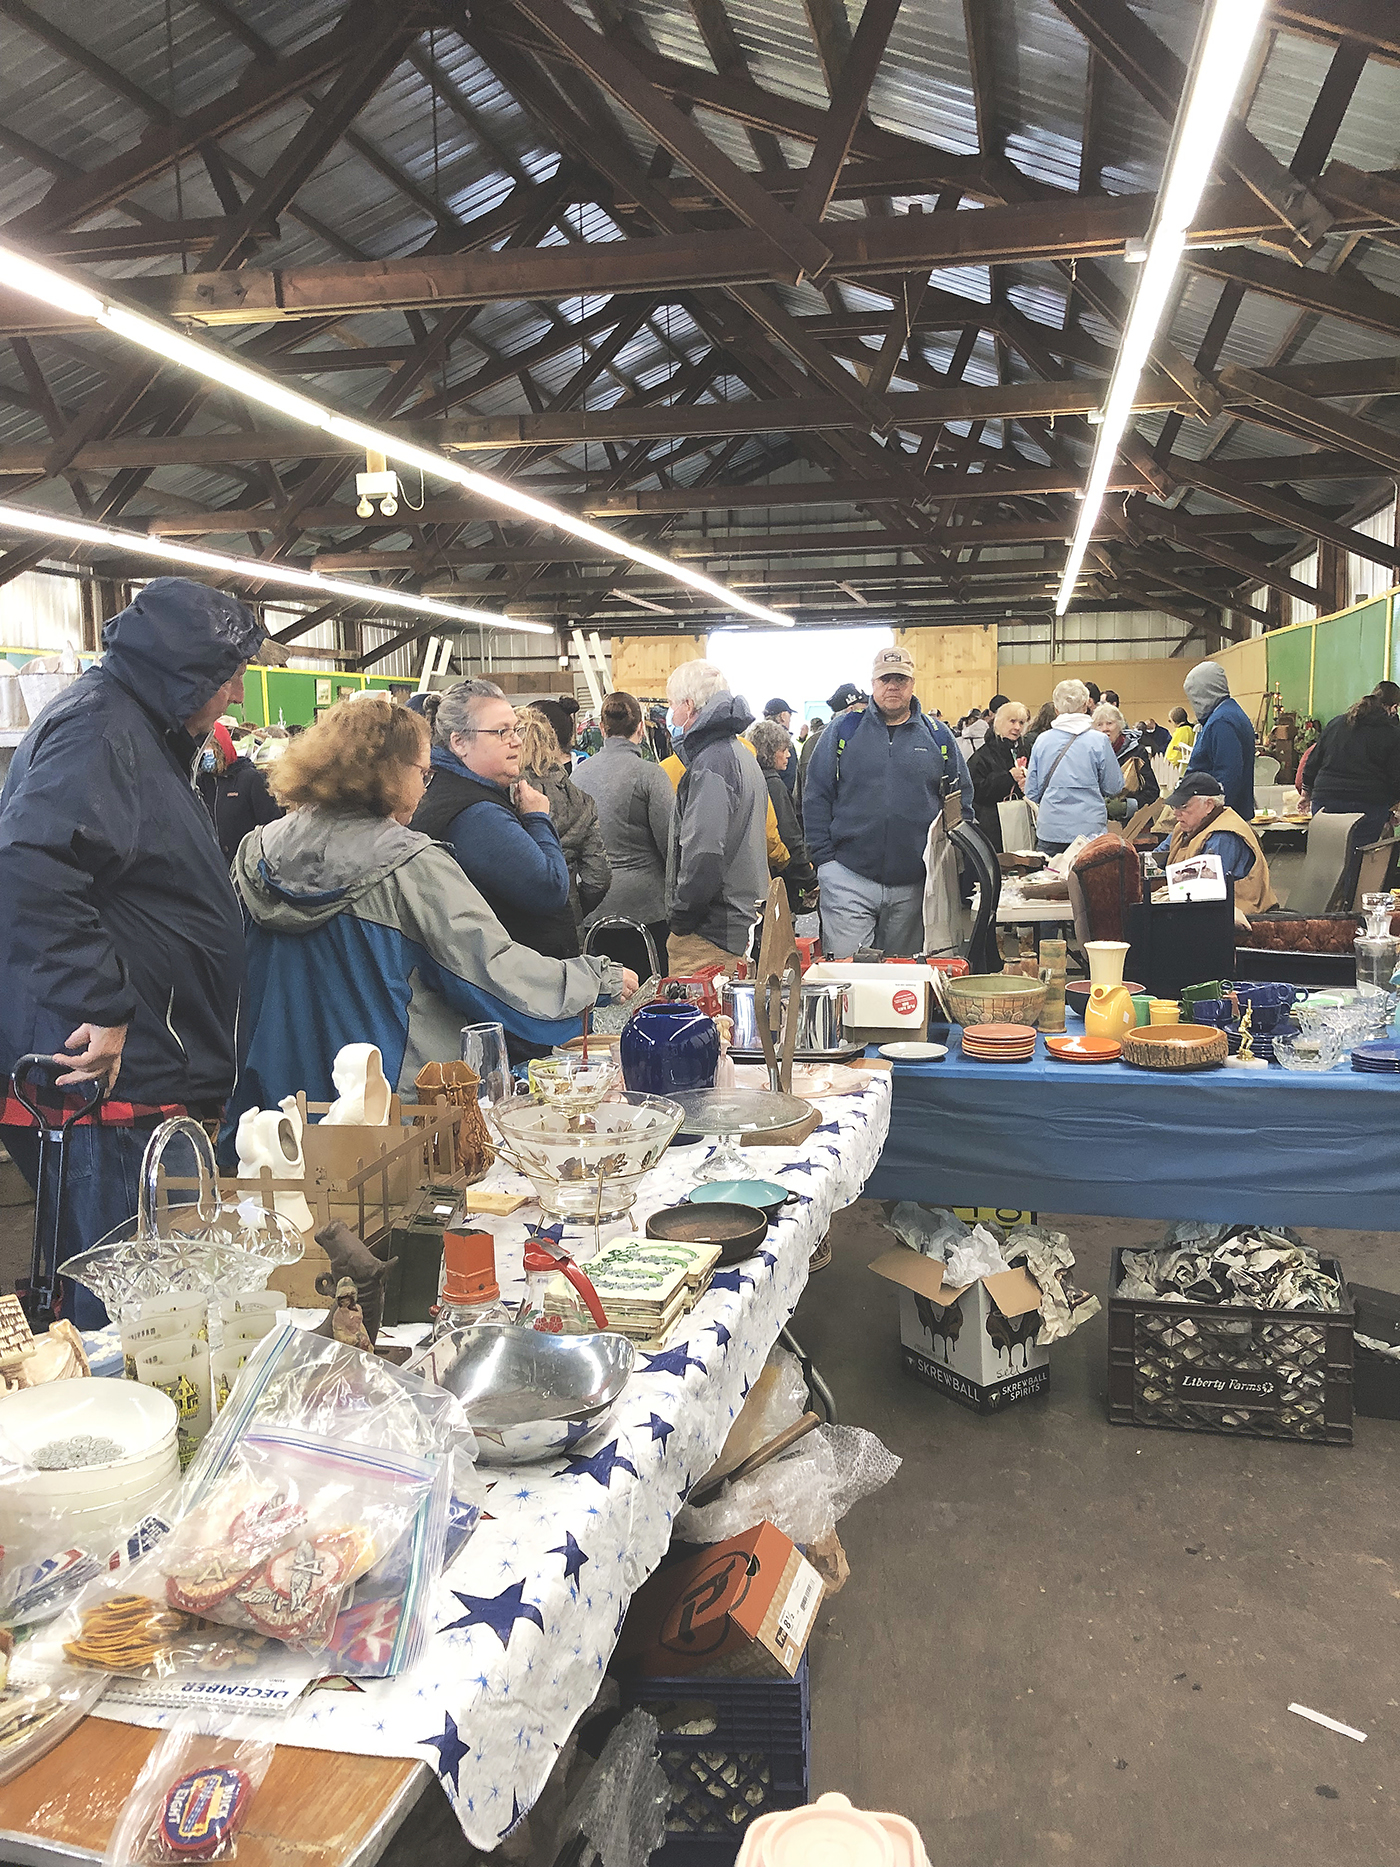 The weather conditions did not keep many people away. The crowd, partially shown above on the first day, totaled just under 6,000. The second day brought another 3,200 buyers. Many younger buyers, some with strollers, were in the crowd.